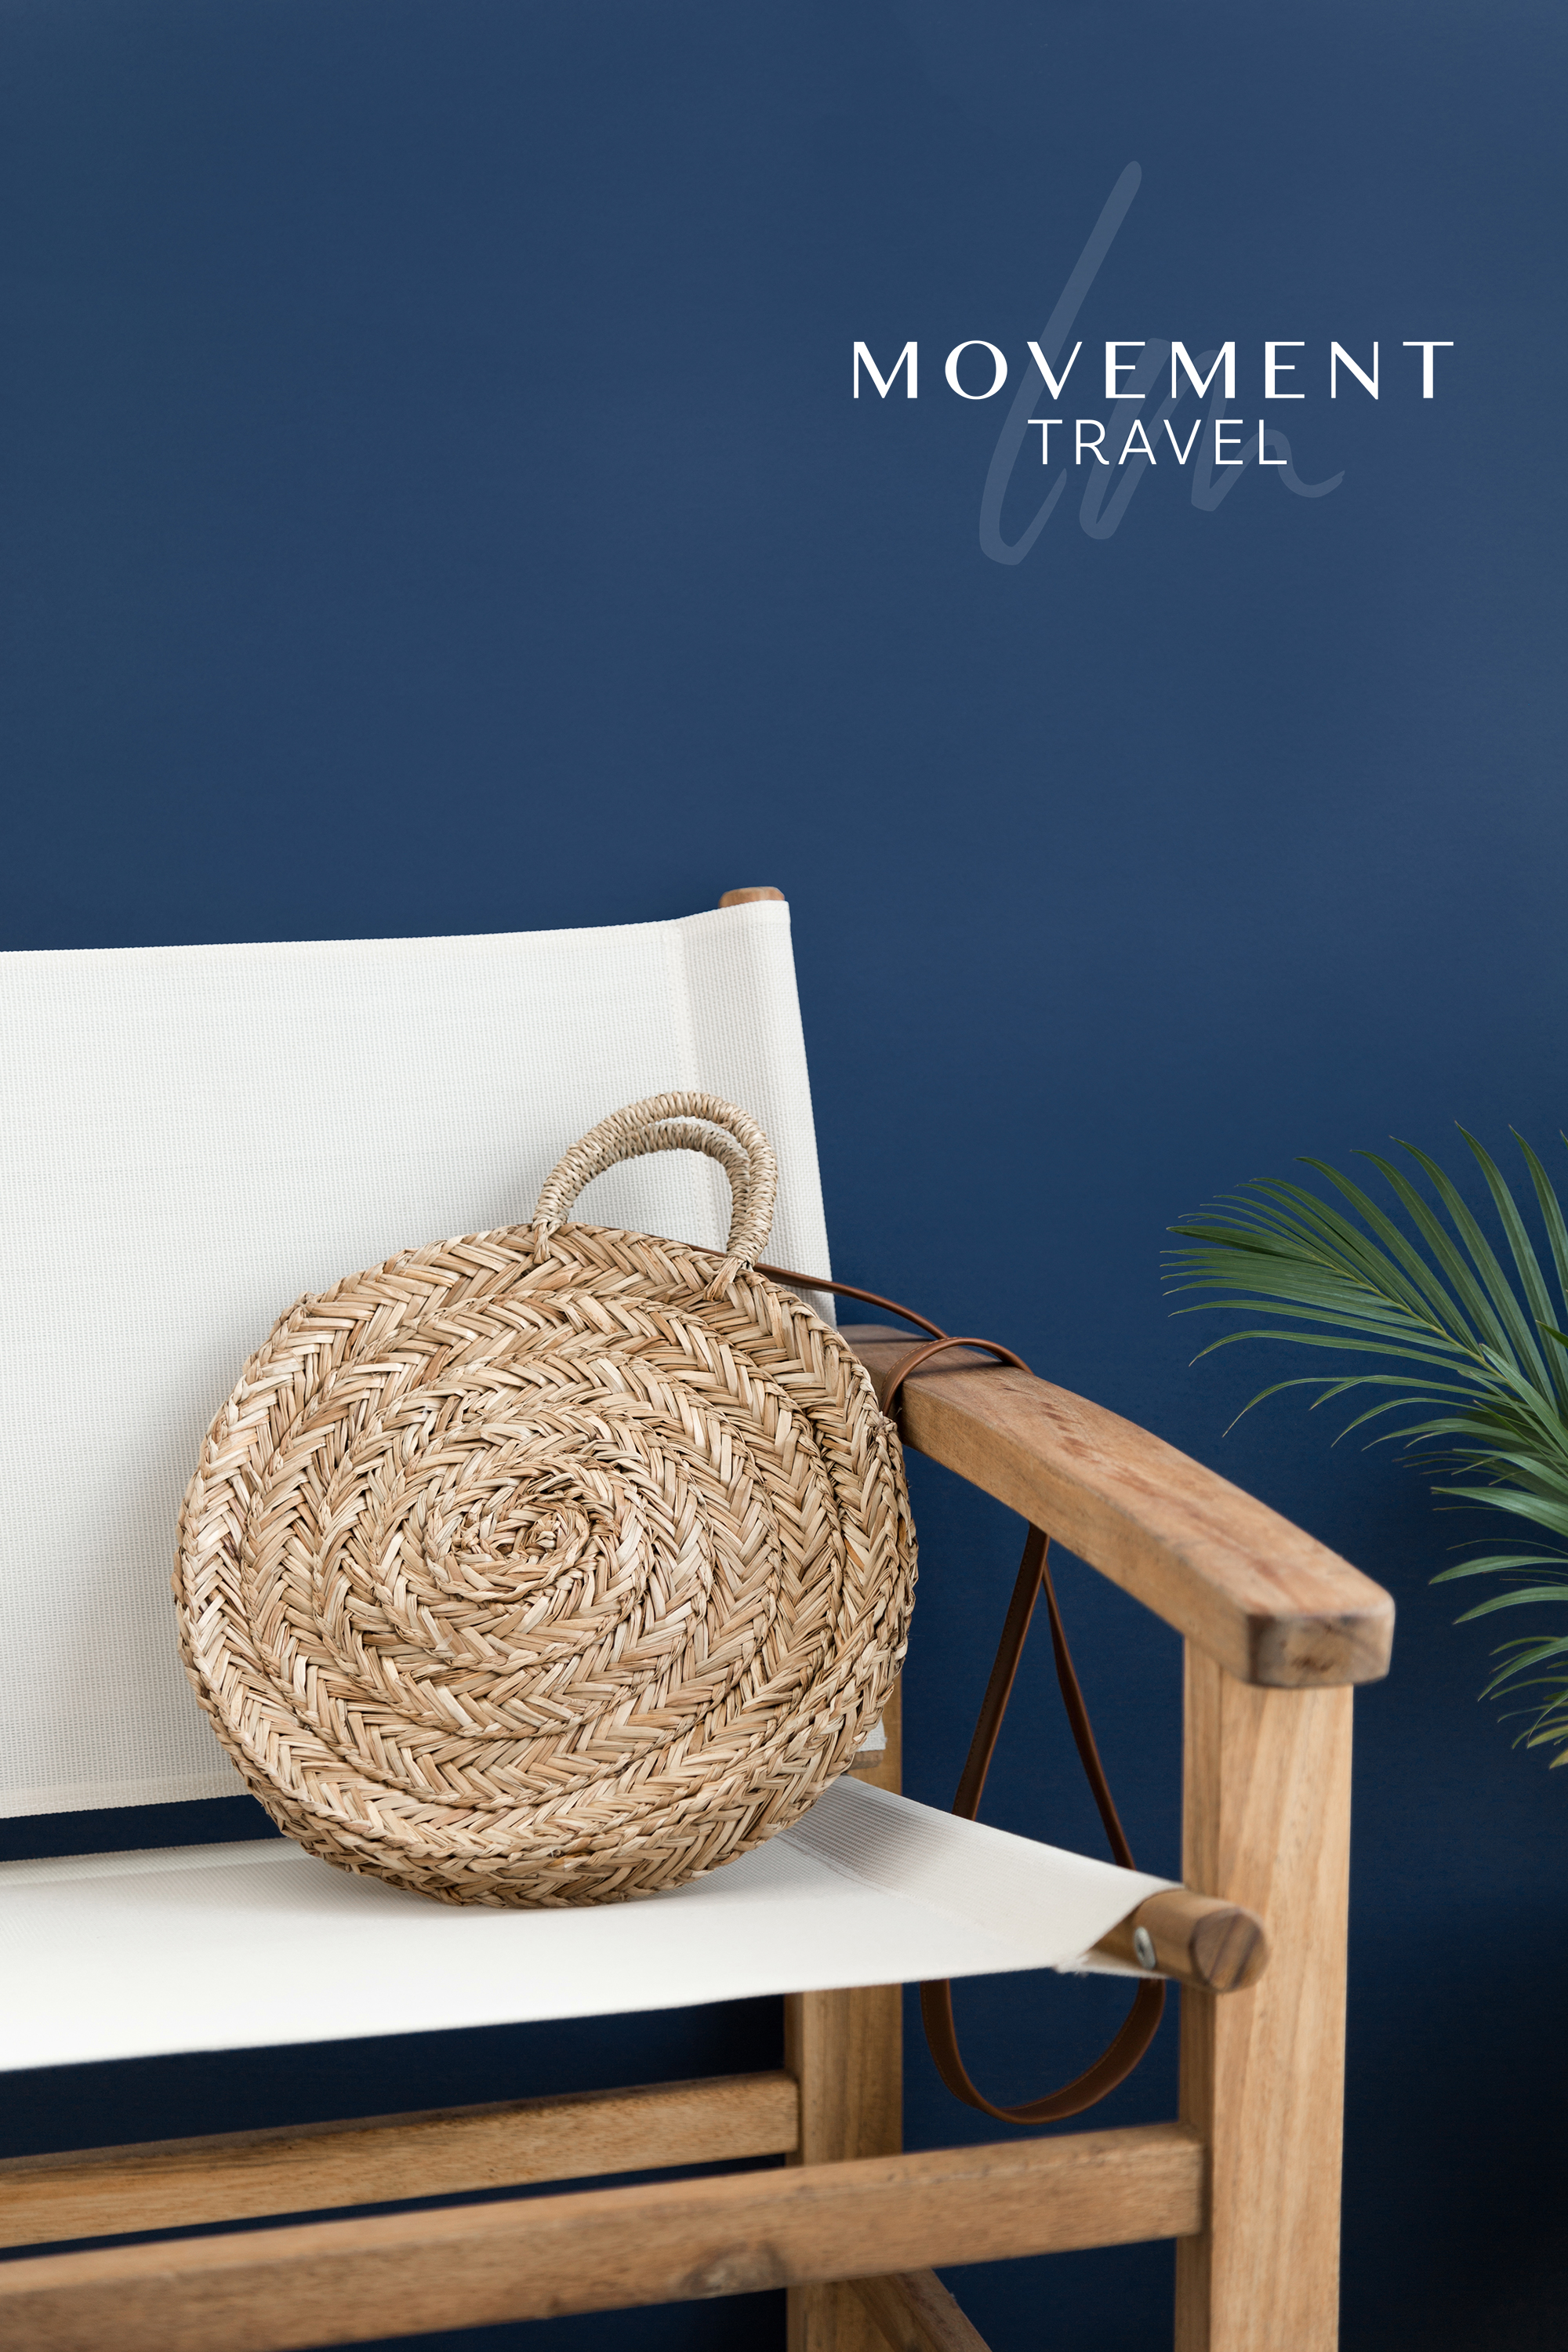 LM Movement Travel main logo on a photo of a beach chair in front of a blue wall